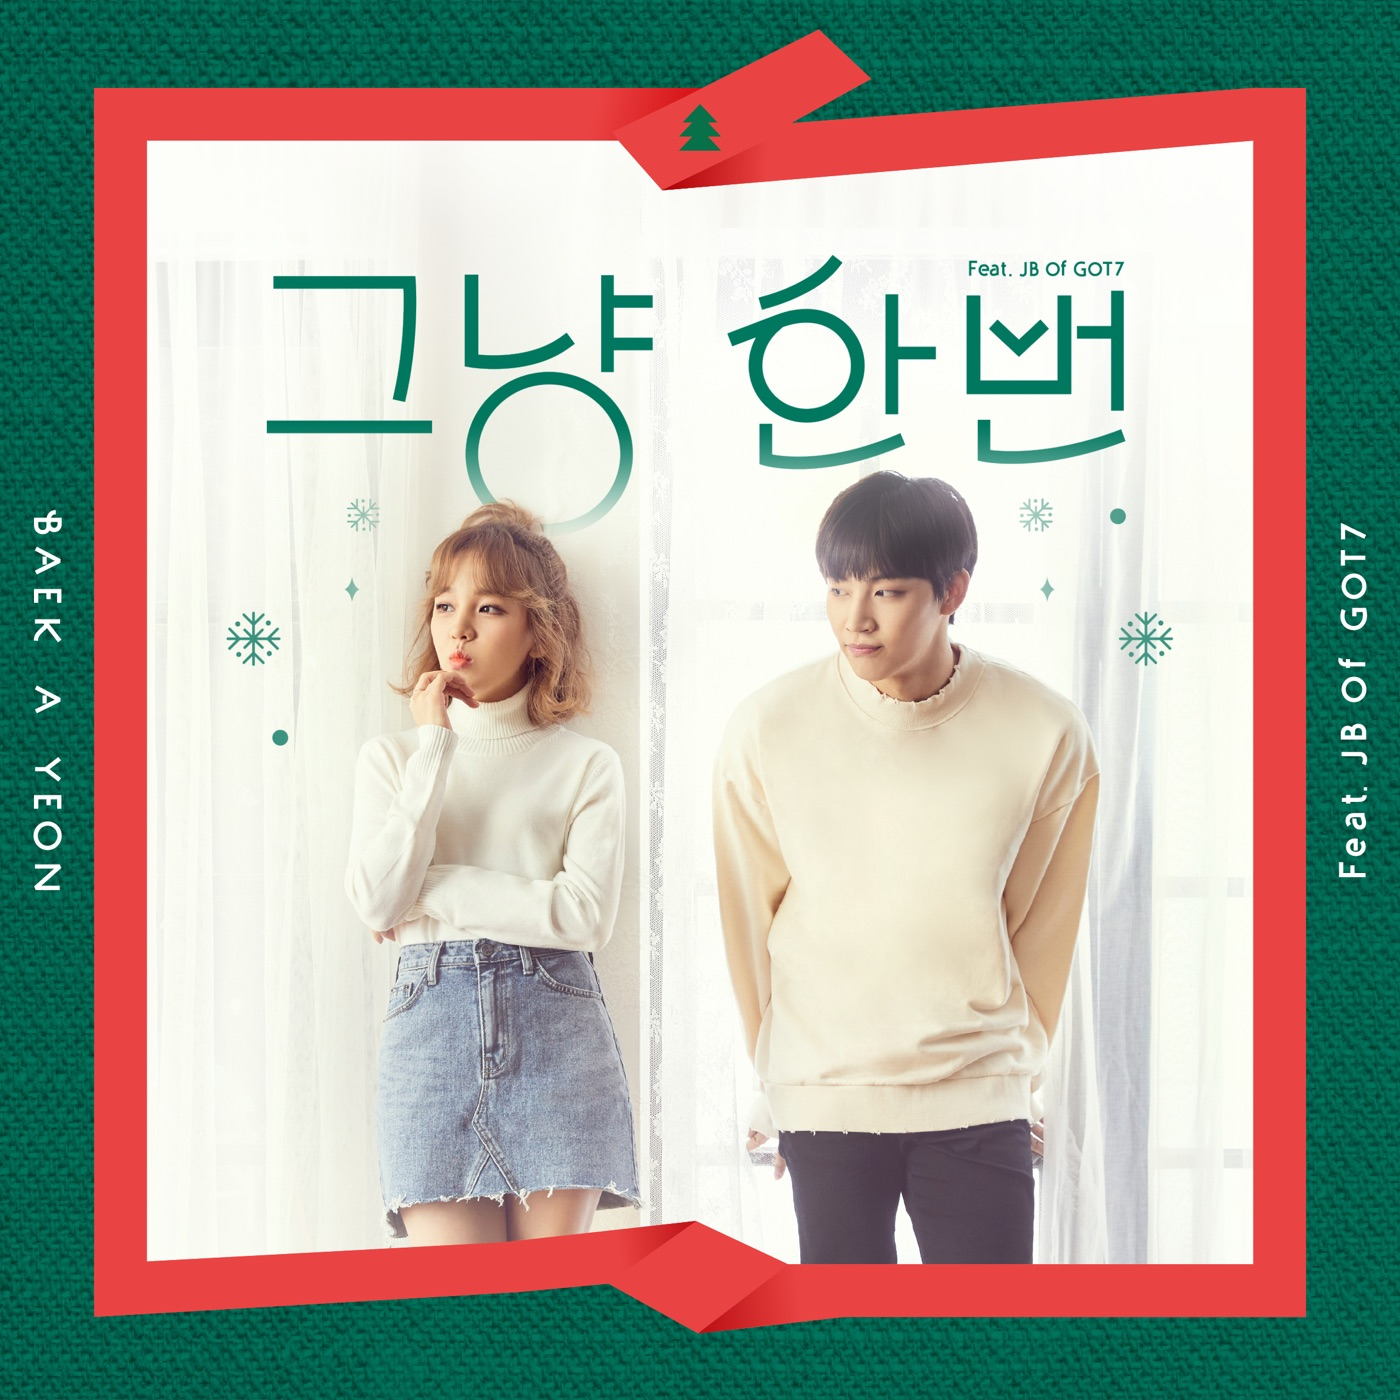 白娥娟 - 그냥 한번 Just because (feat. JB) - Single